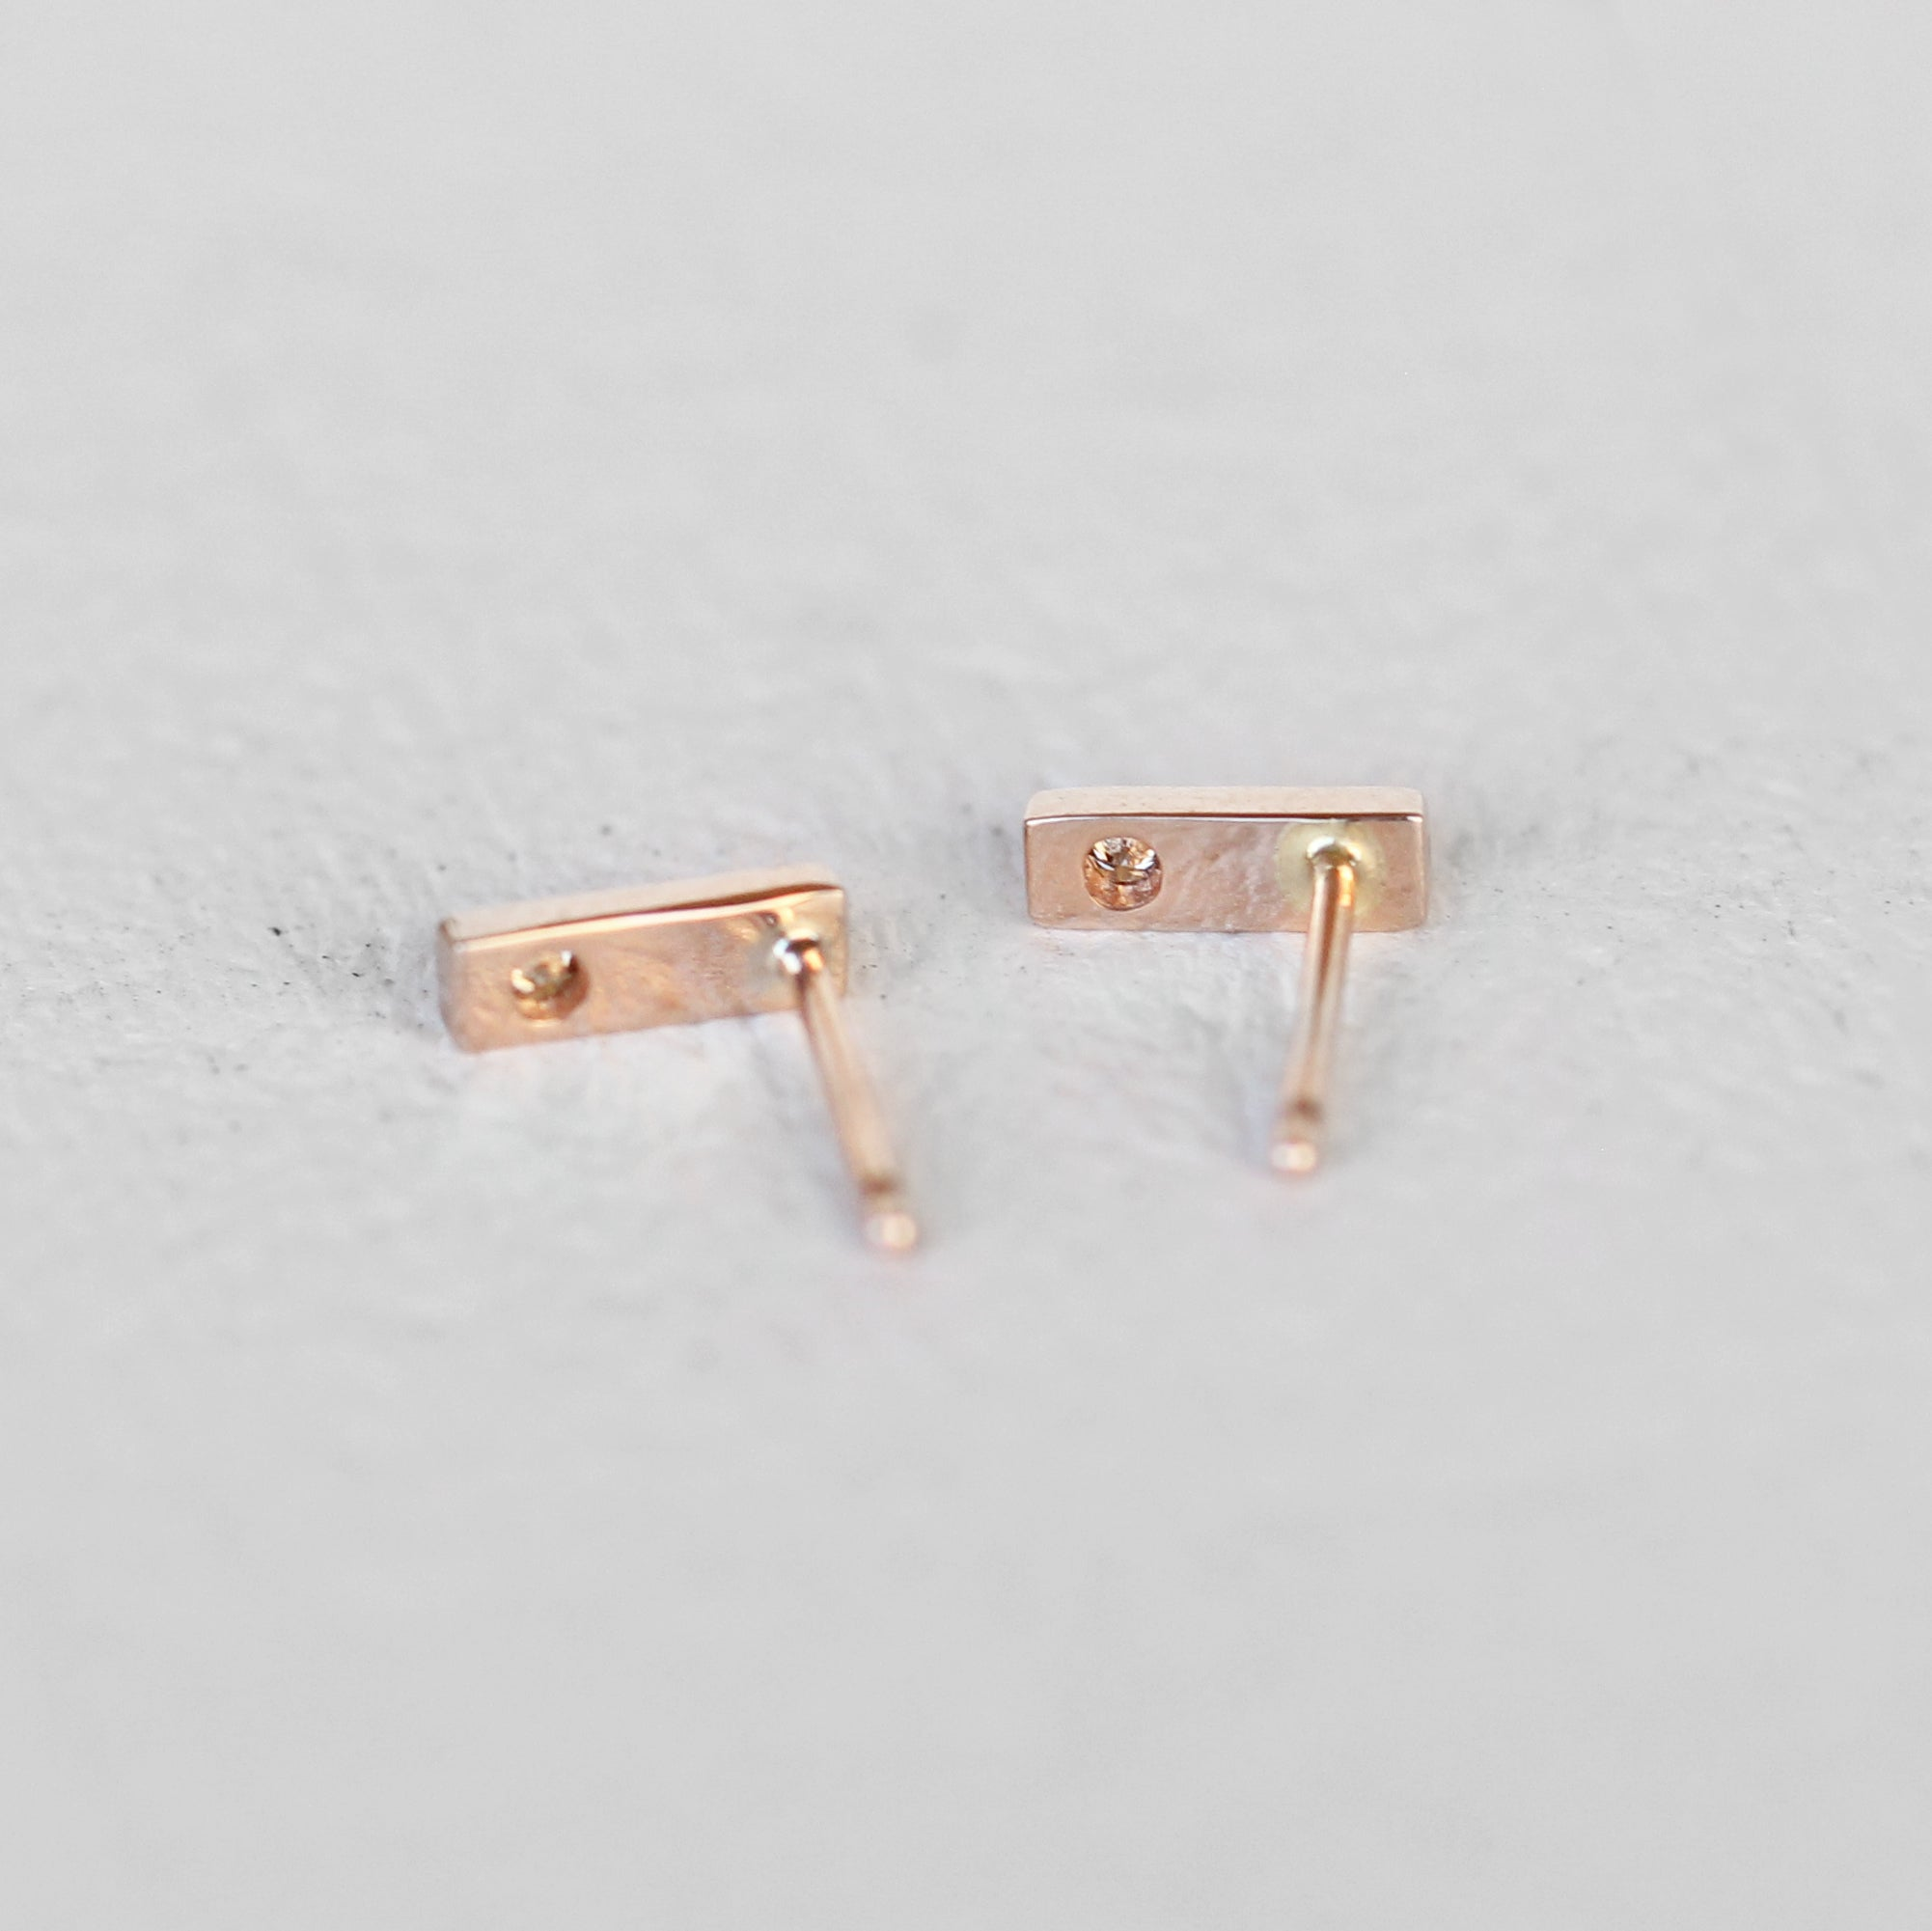 Chantell Earrings - Diamond and 14k Gold Bar Earrings - Celestial Diamonds ® by Midwinter Co.